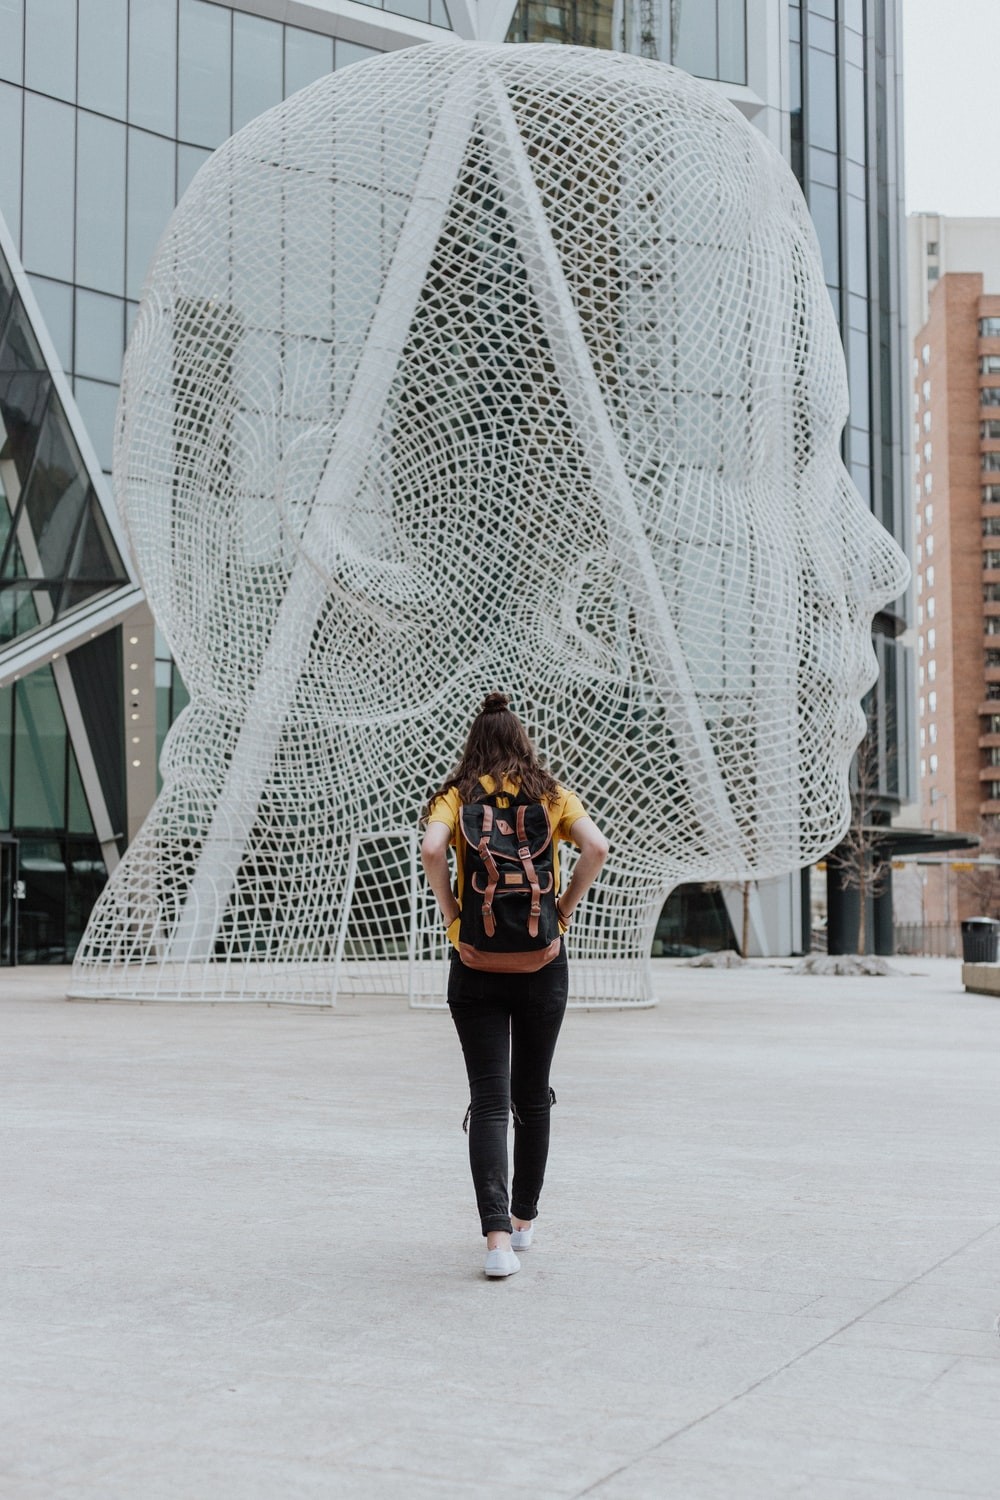 Canadian universities without application fees: face statue in Calgary